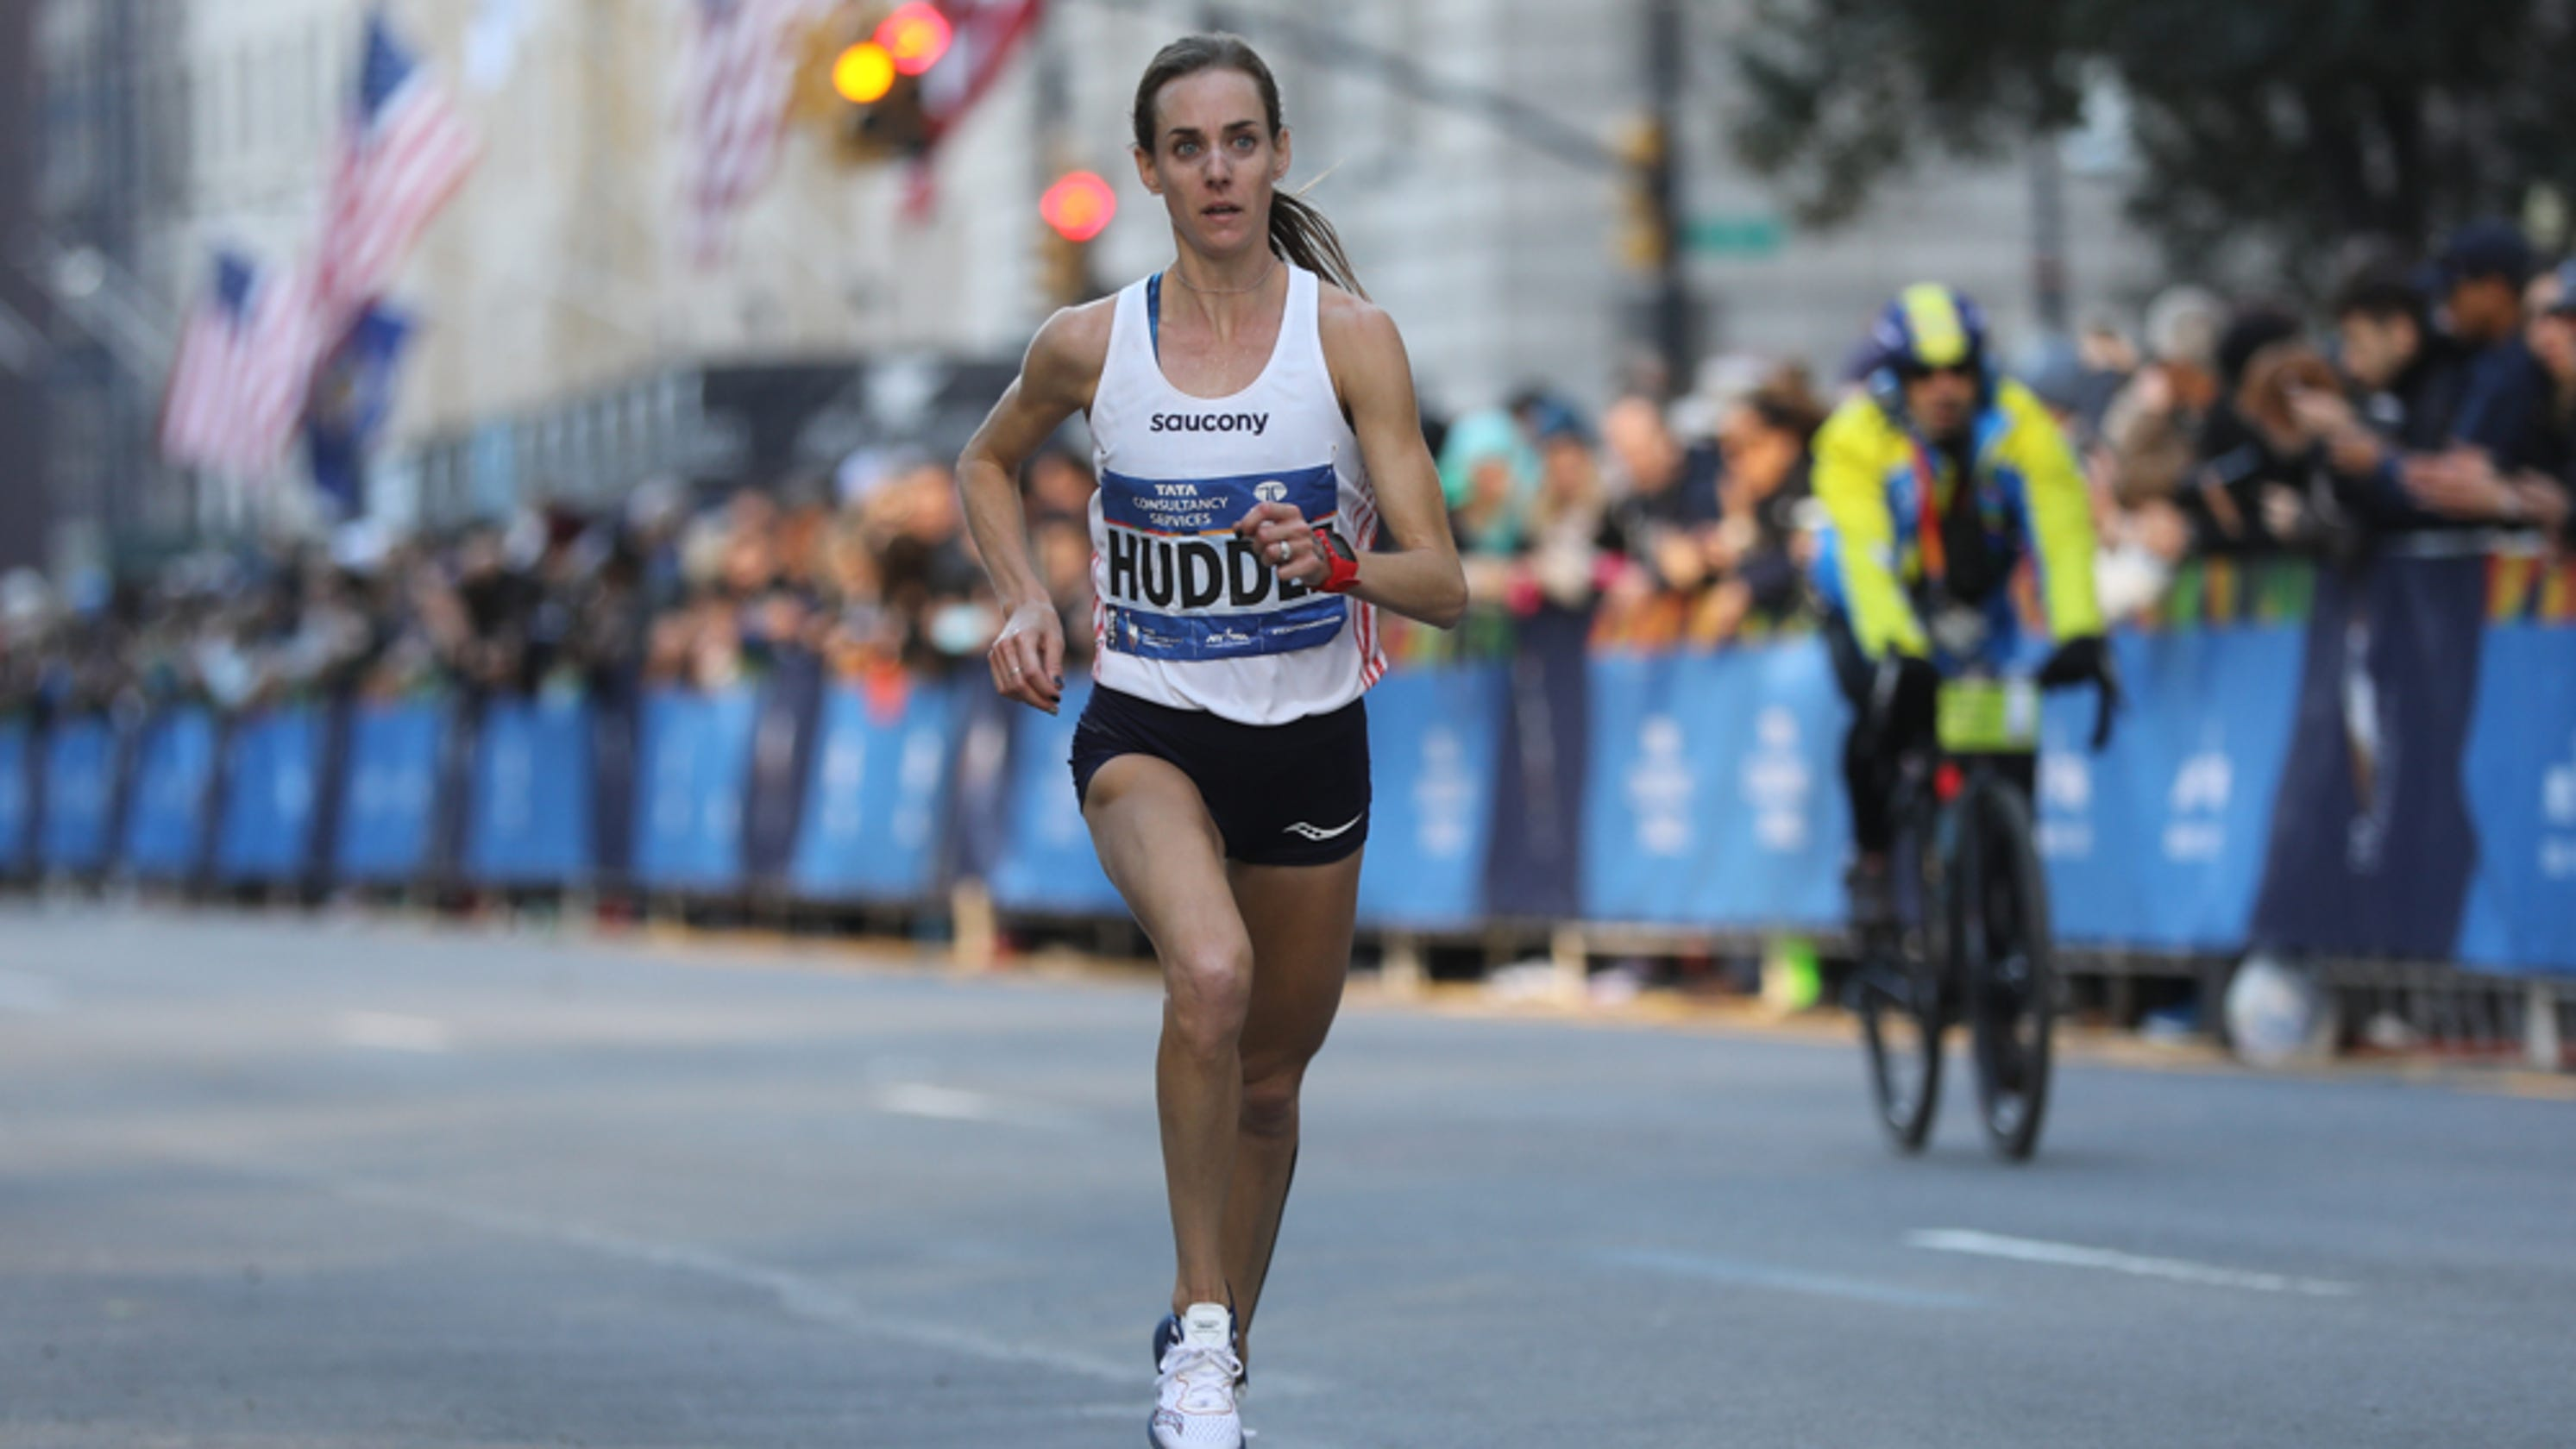 344bd173c656 Molly Huddle excited to race New York City Marathon for second time